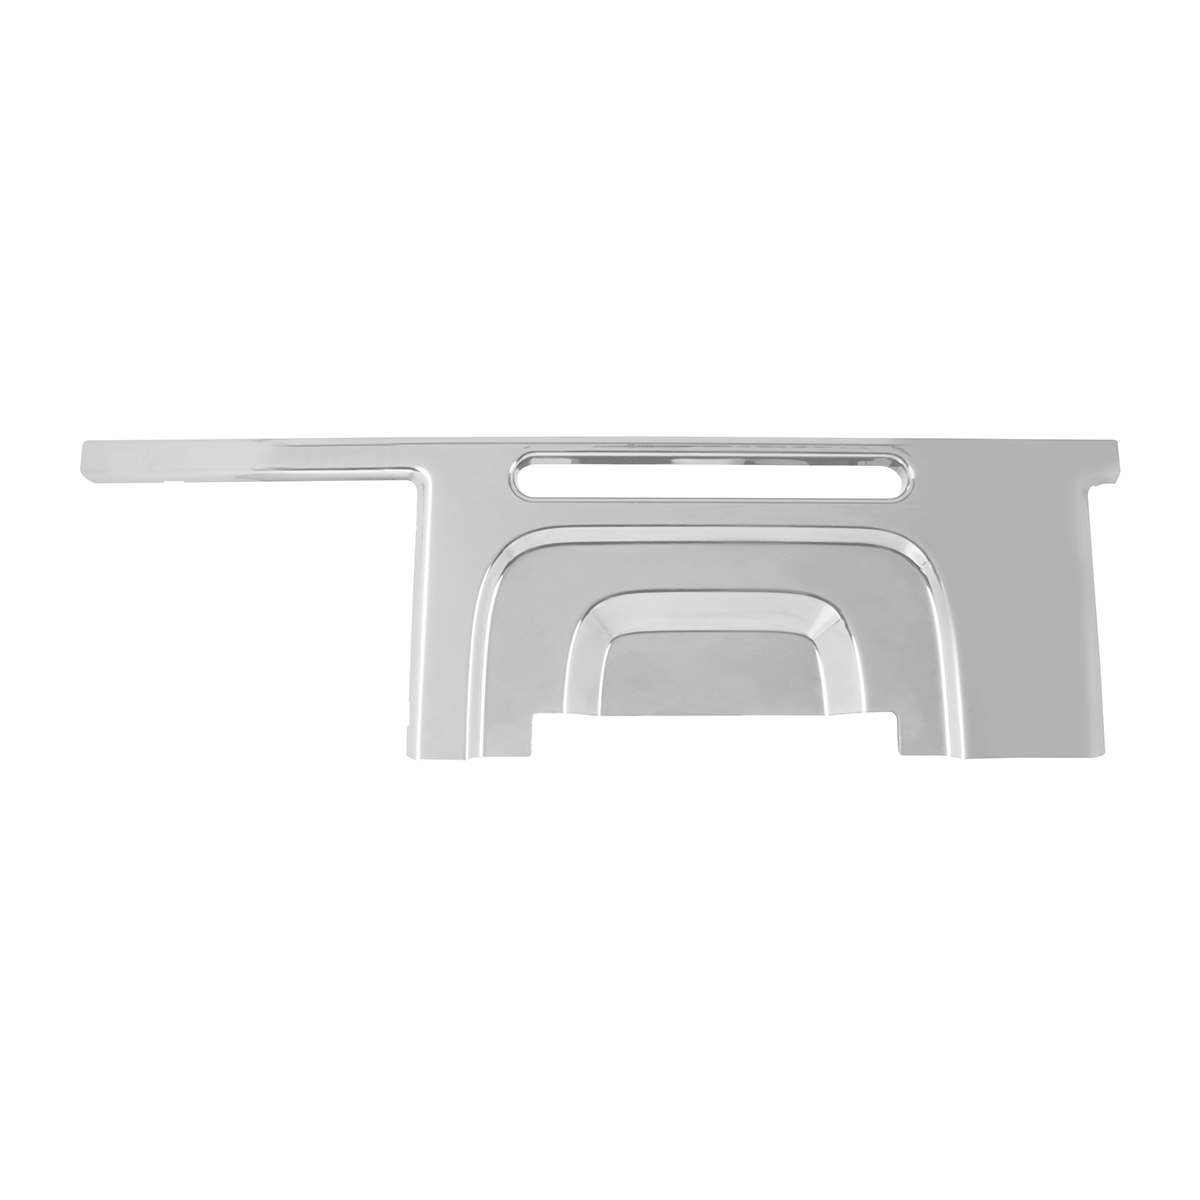 67955 Dash Panel Molding Trim for Peterbilt 2006 & Later